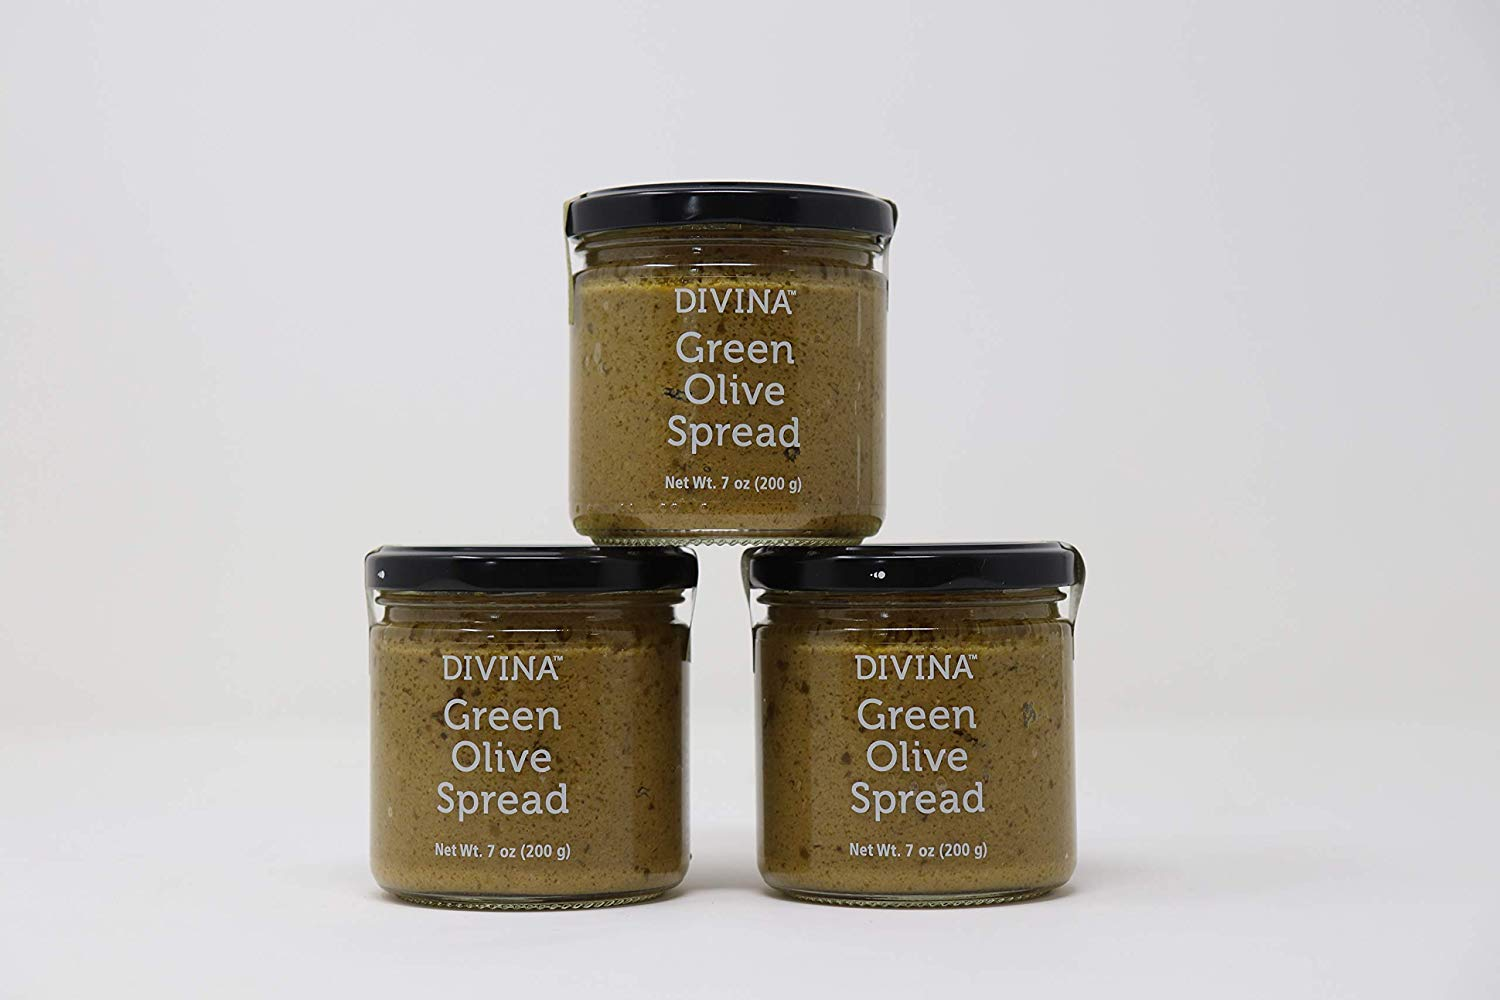 Divina Green Olive Spread, 7 Oz, 3 pack by Divina